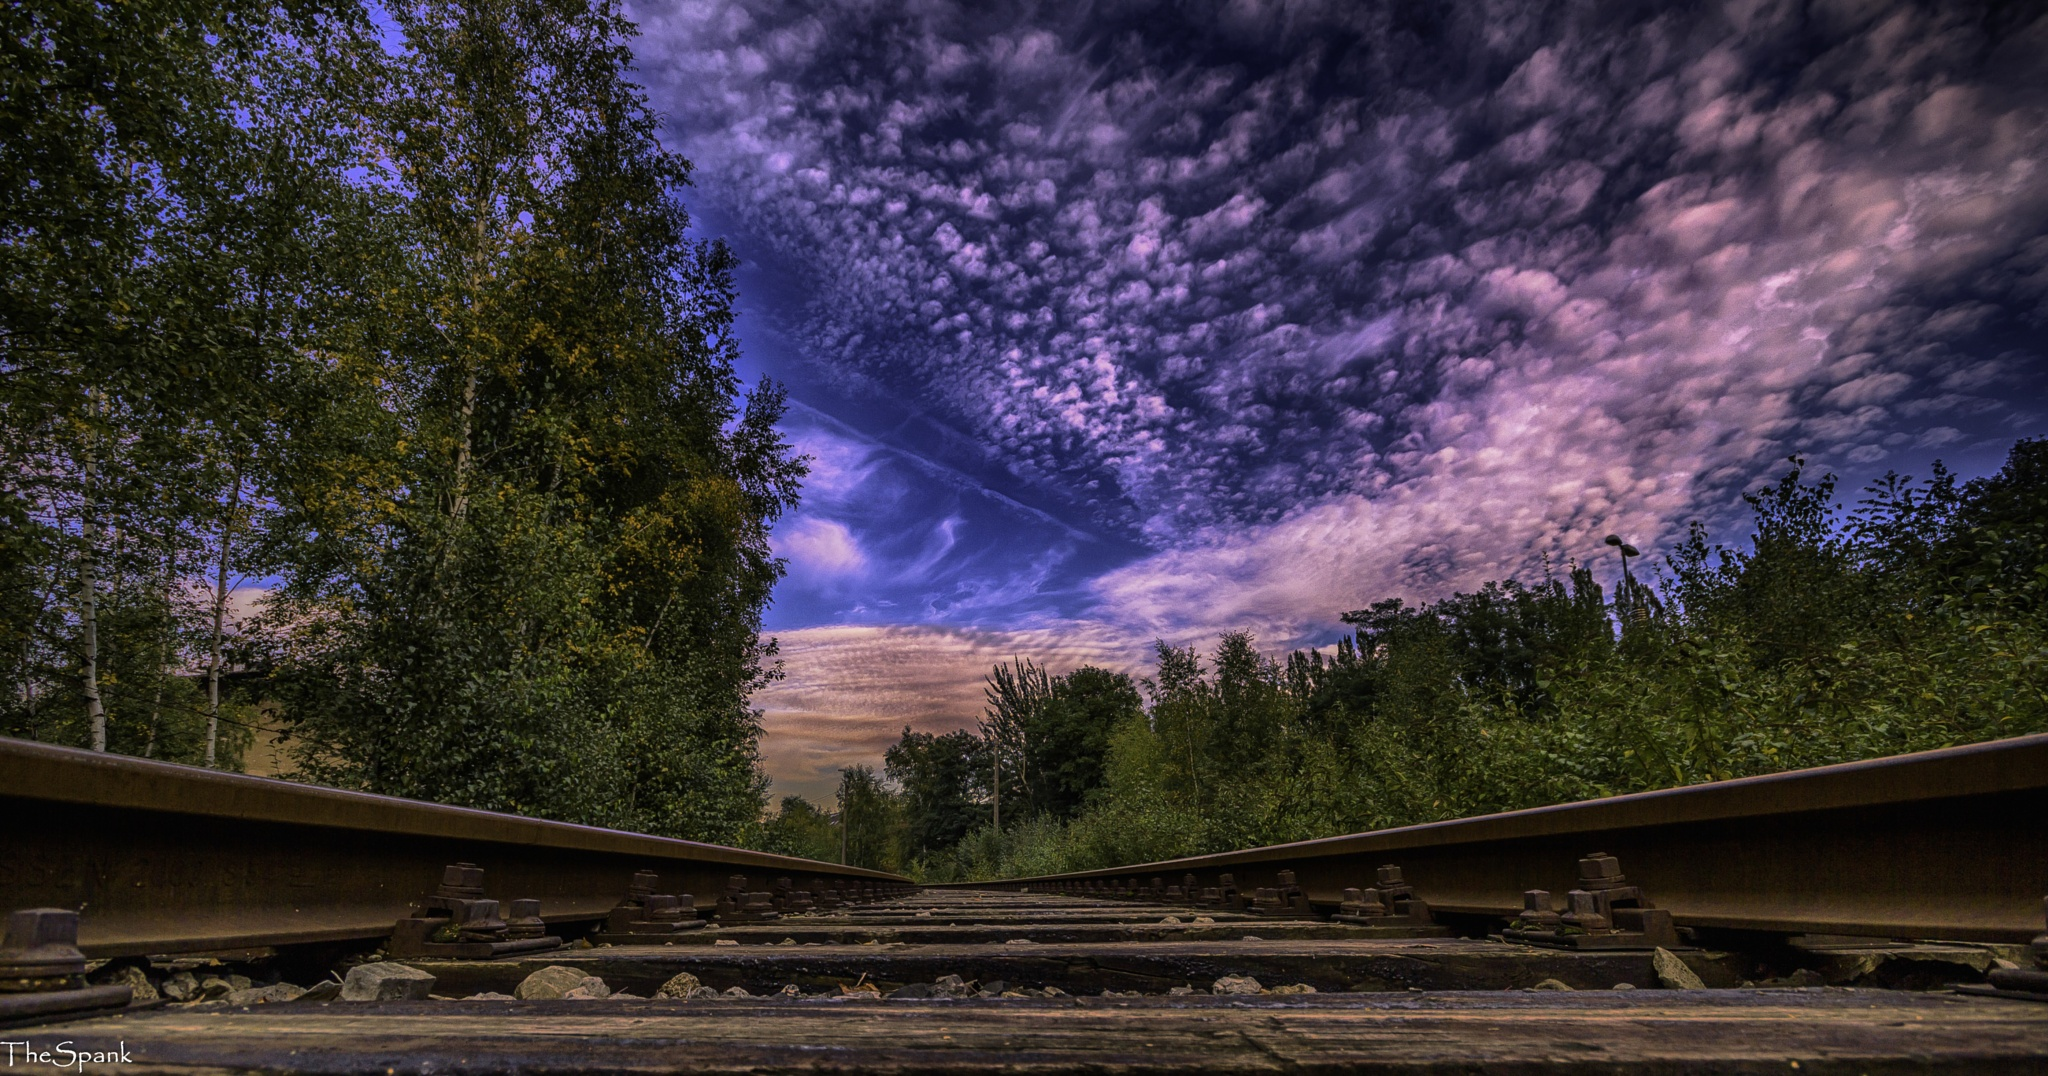 Road to nowhere by Henk